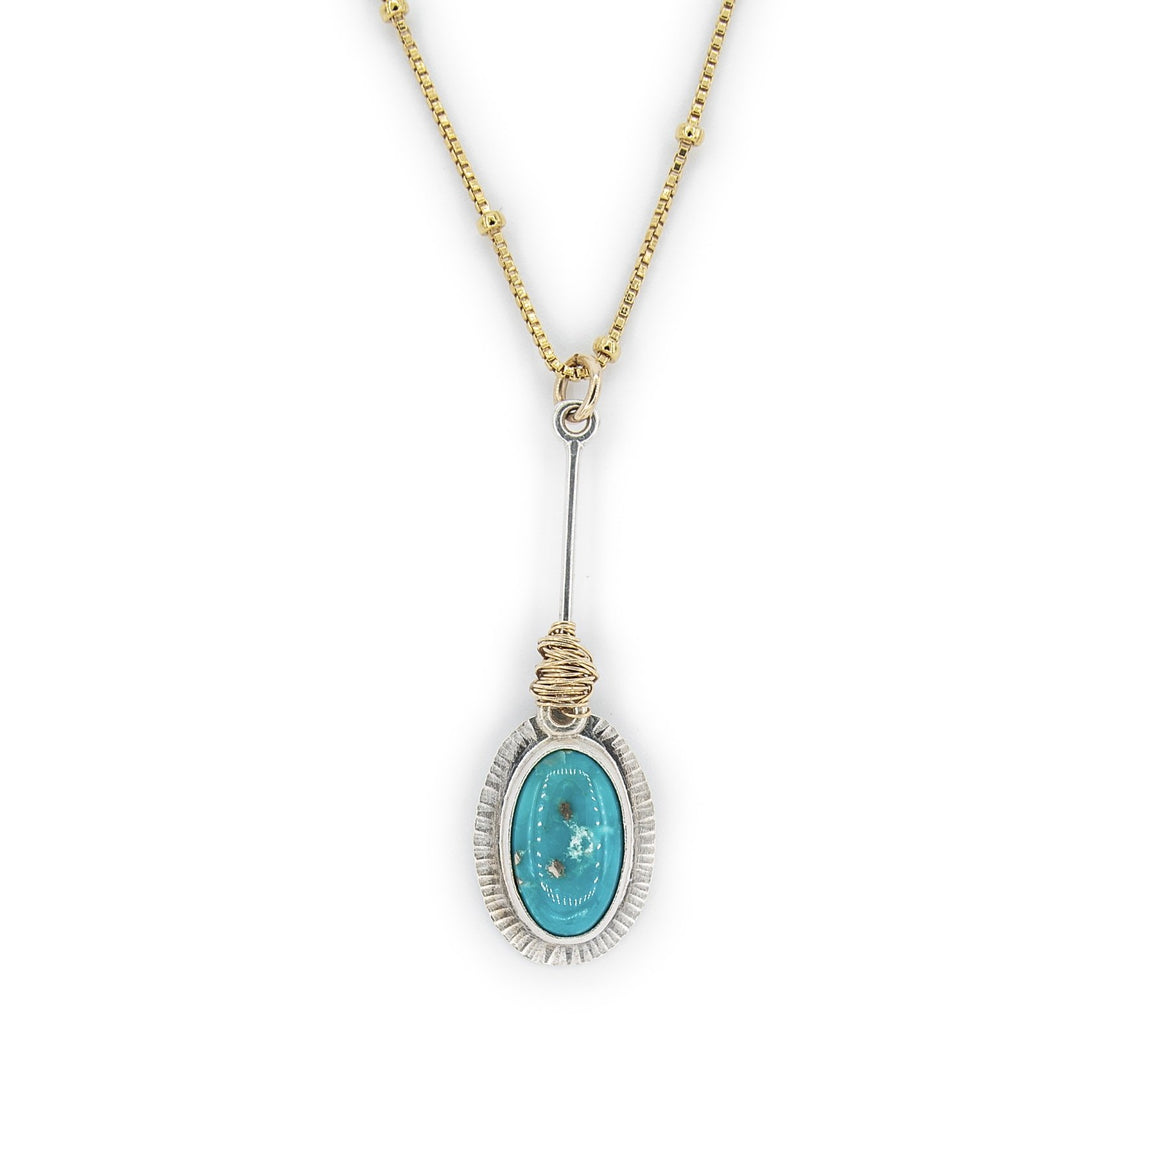 Ithaca Peak Turquoise Necklace by Original Sin Jewelry